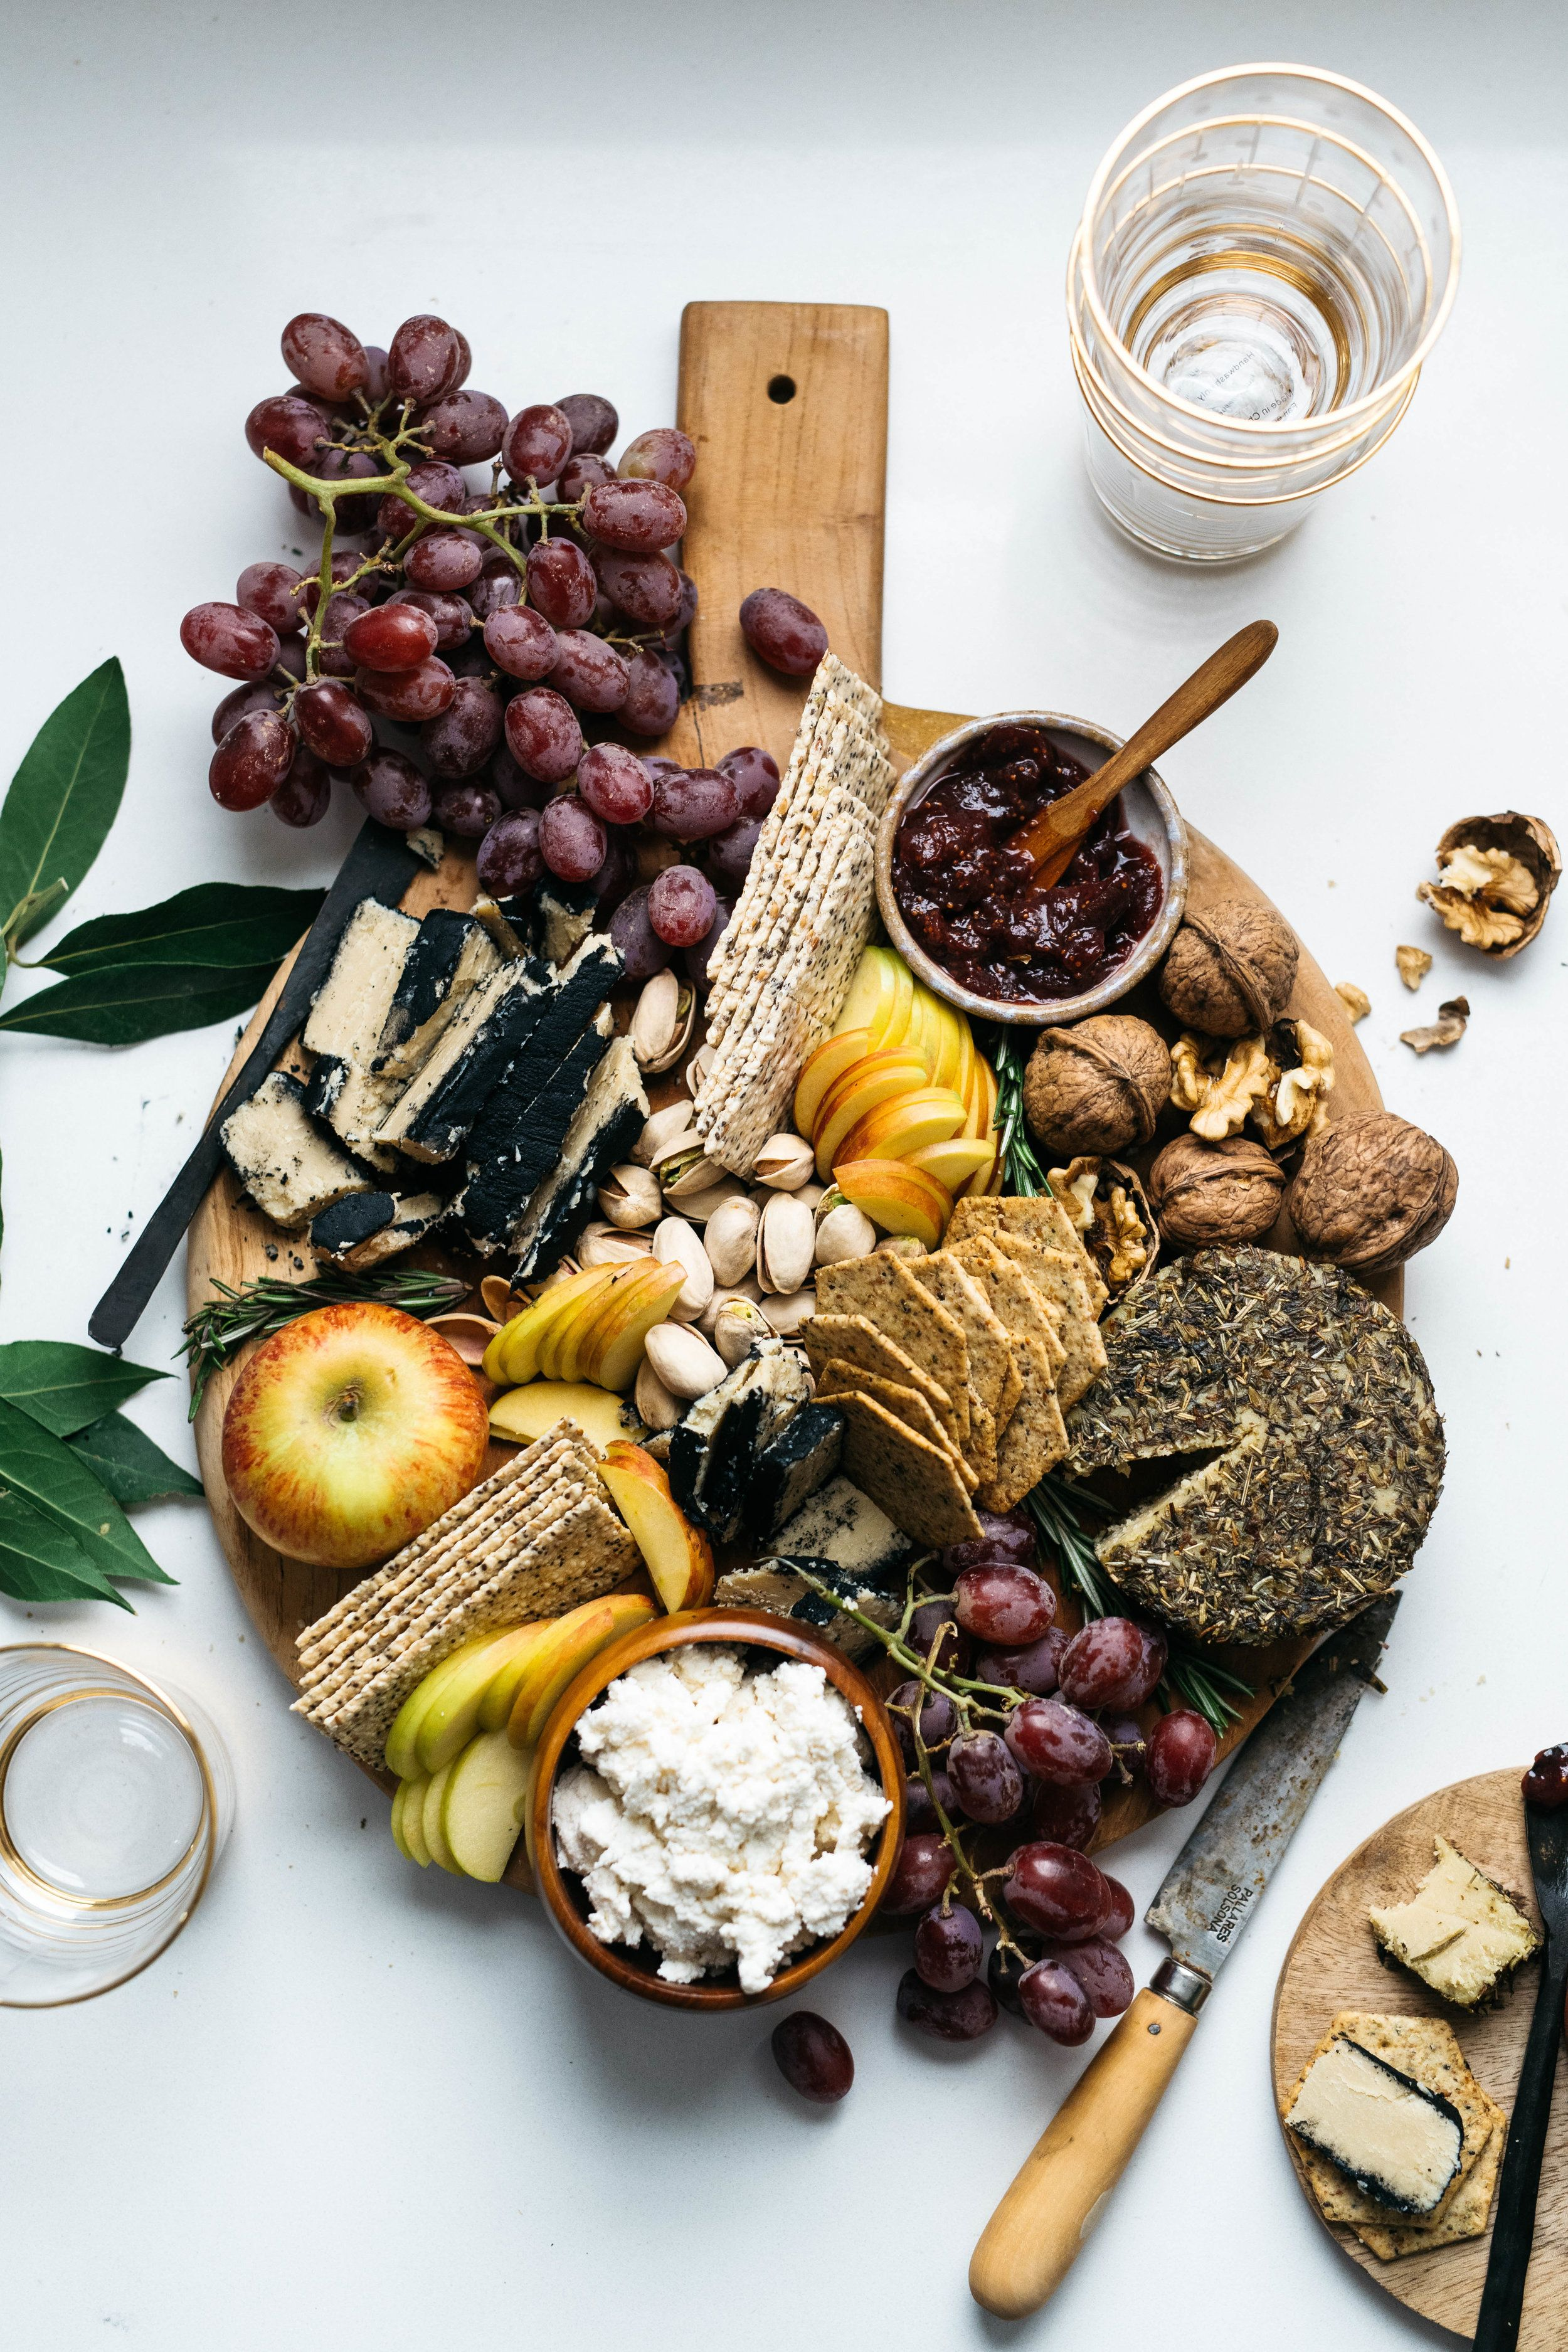 Your Go To Vegan Cheese Board How To Pair It With Wine Vegan Cheese Boards Vegan Wine Charcuterie And Cheese Board